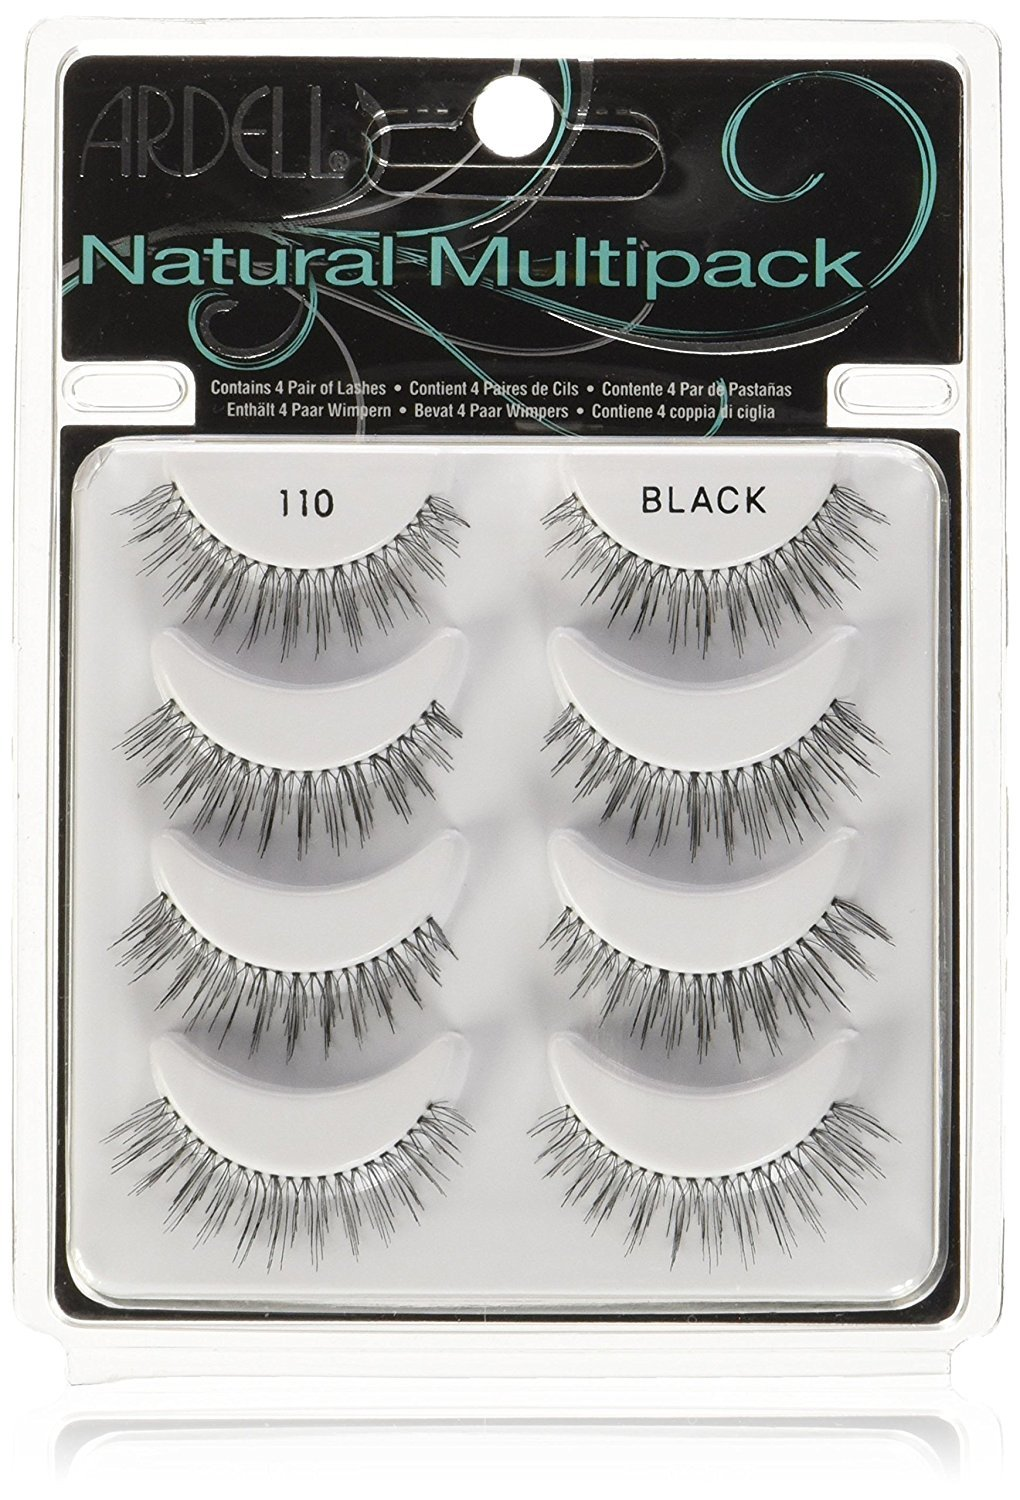 9b1a7156a93 ARDELL Multipack Lashes 110, 1 Count: Amazon.ca: Beauty